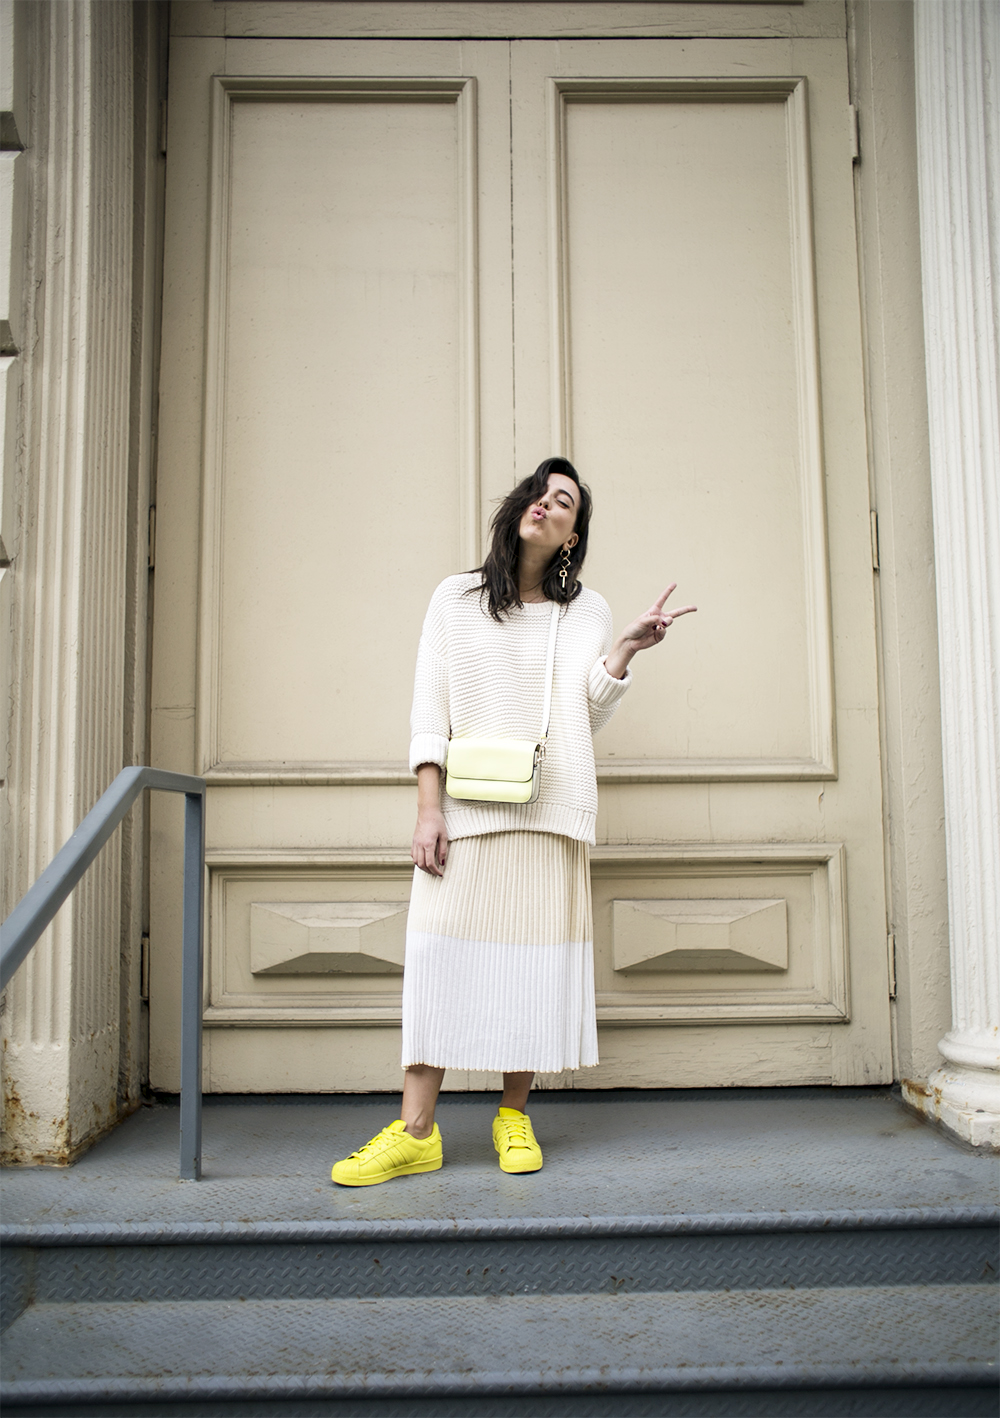 5_sania-claus-demina-new-york-city-2015-yellow-outfit-adidas-pharell-williams-dagmar-dress-gina-tricot-gant_10